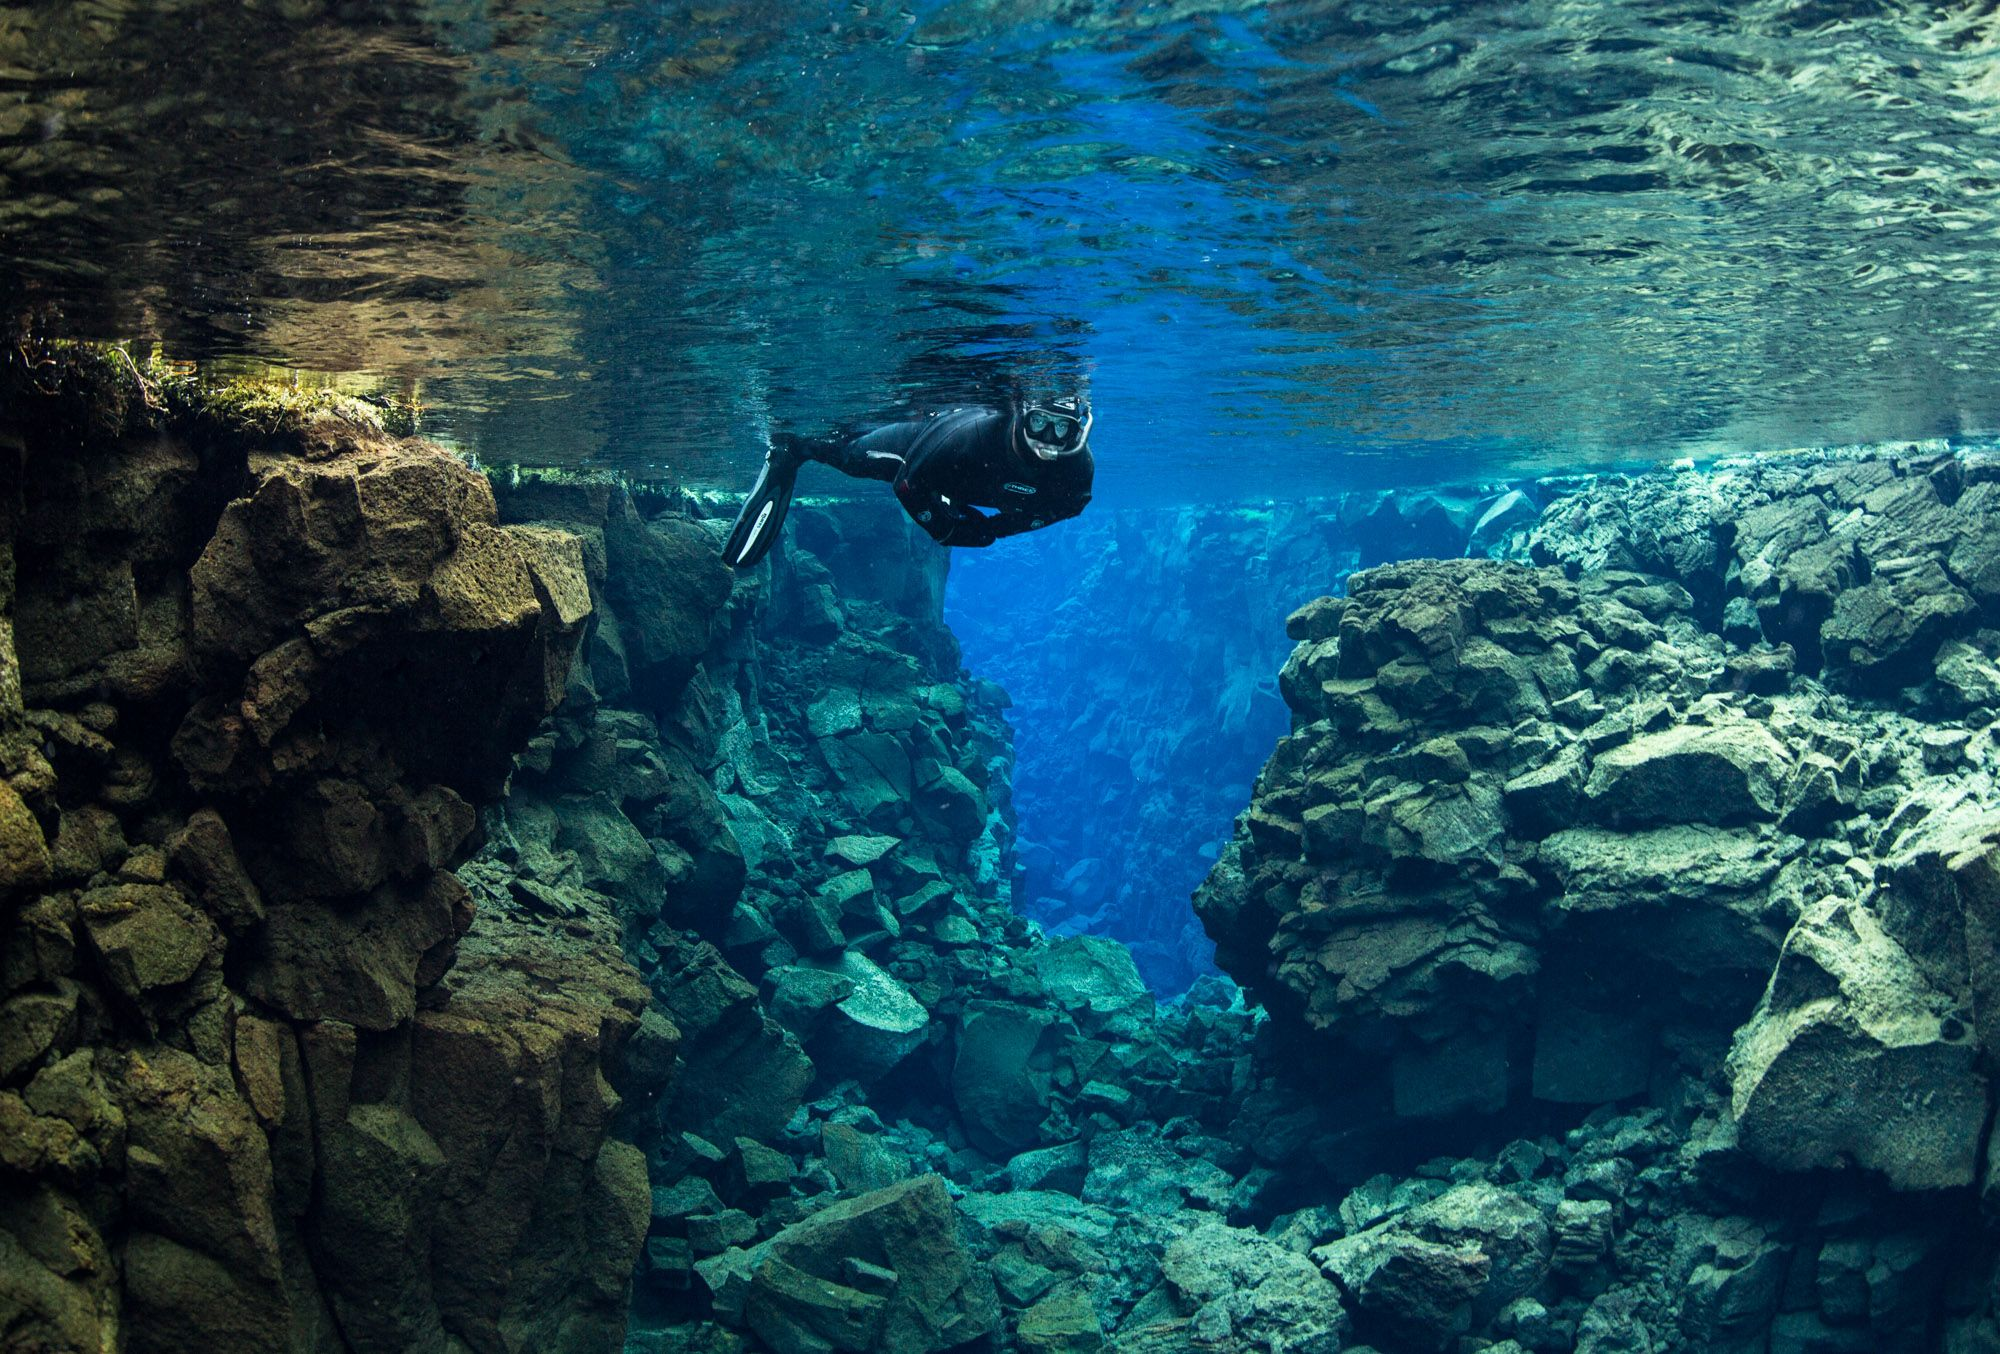 snorkler exploring the tectonic plates in Iceland